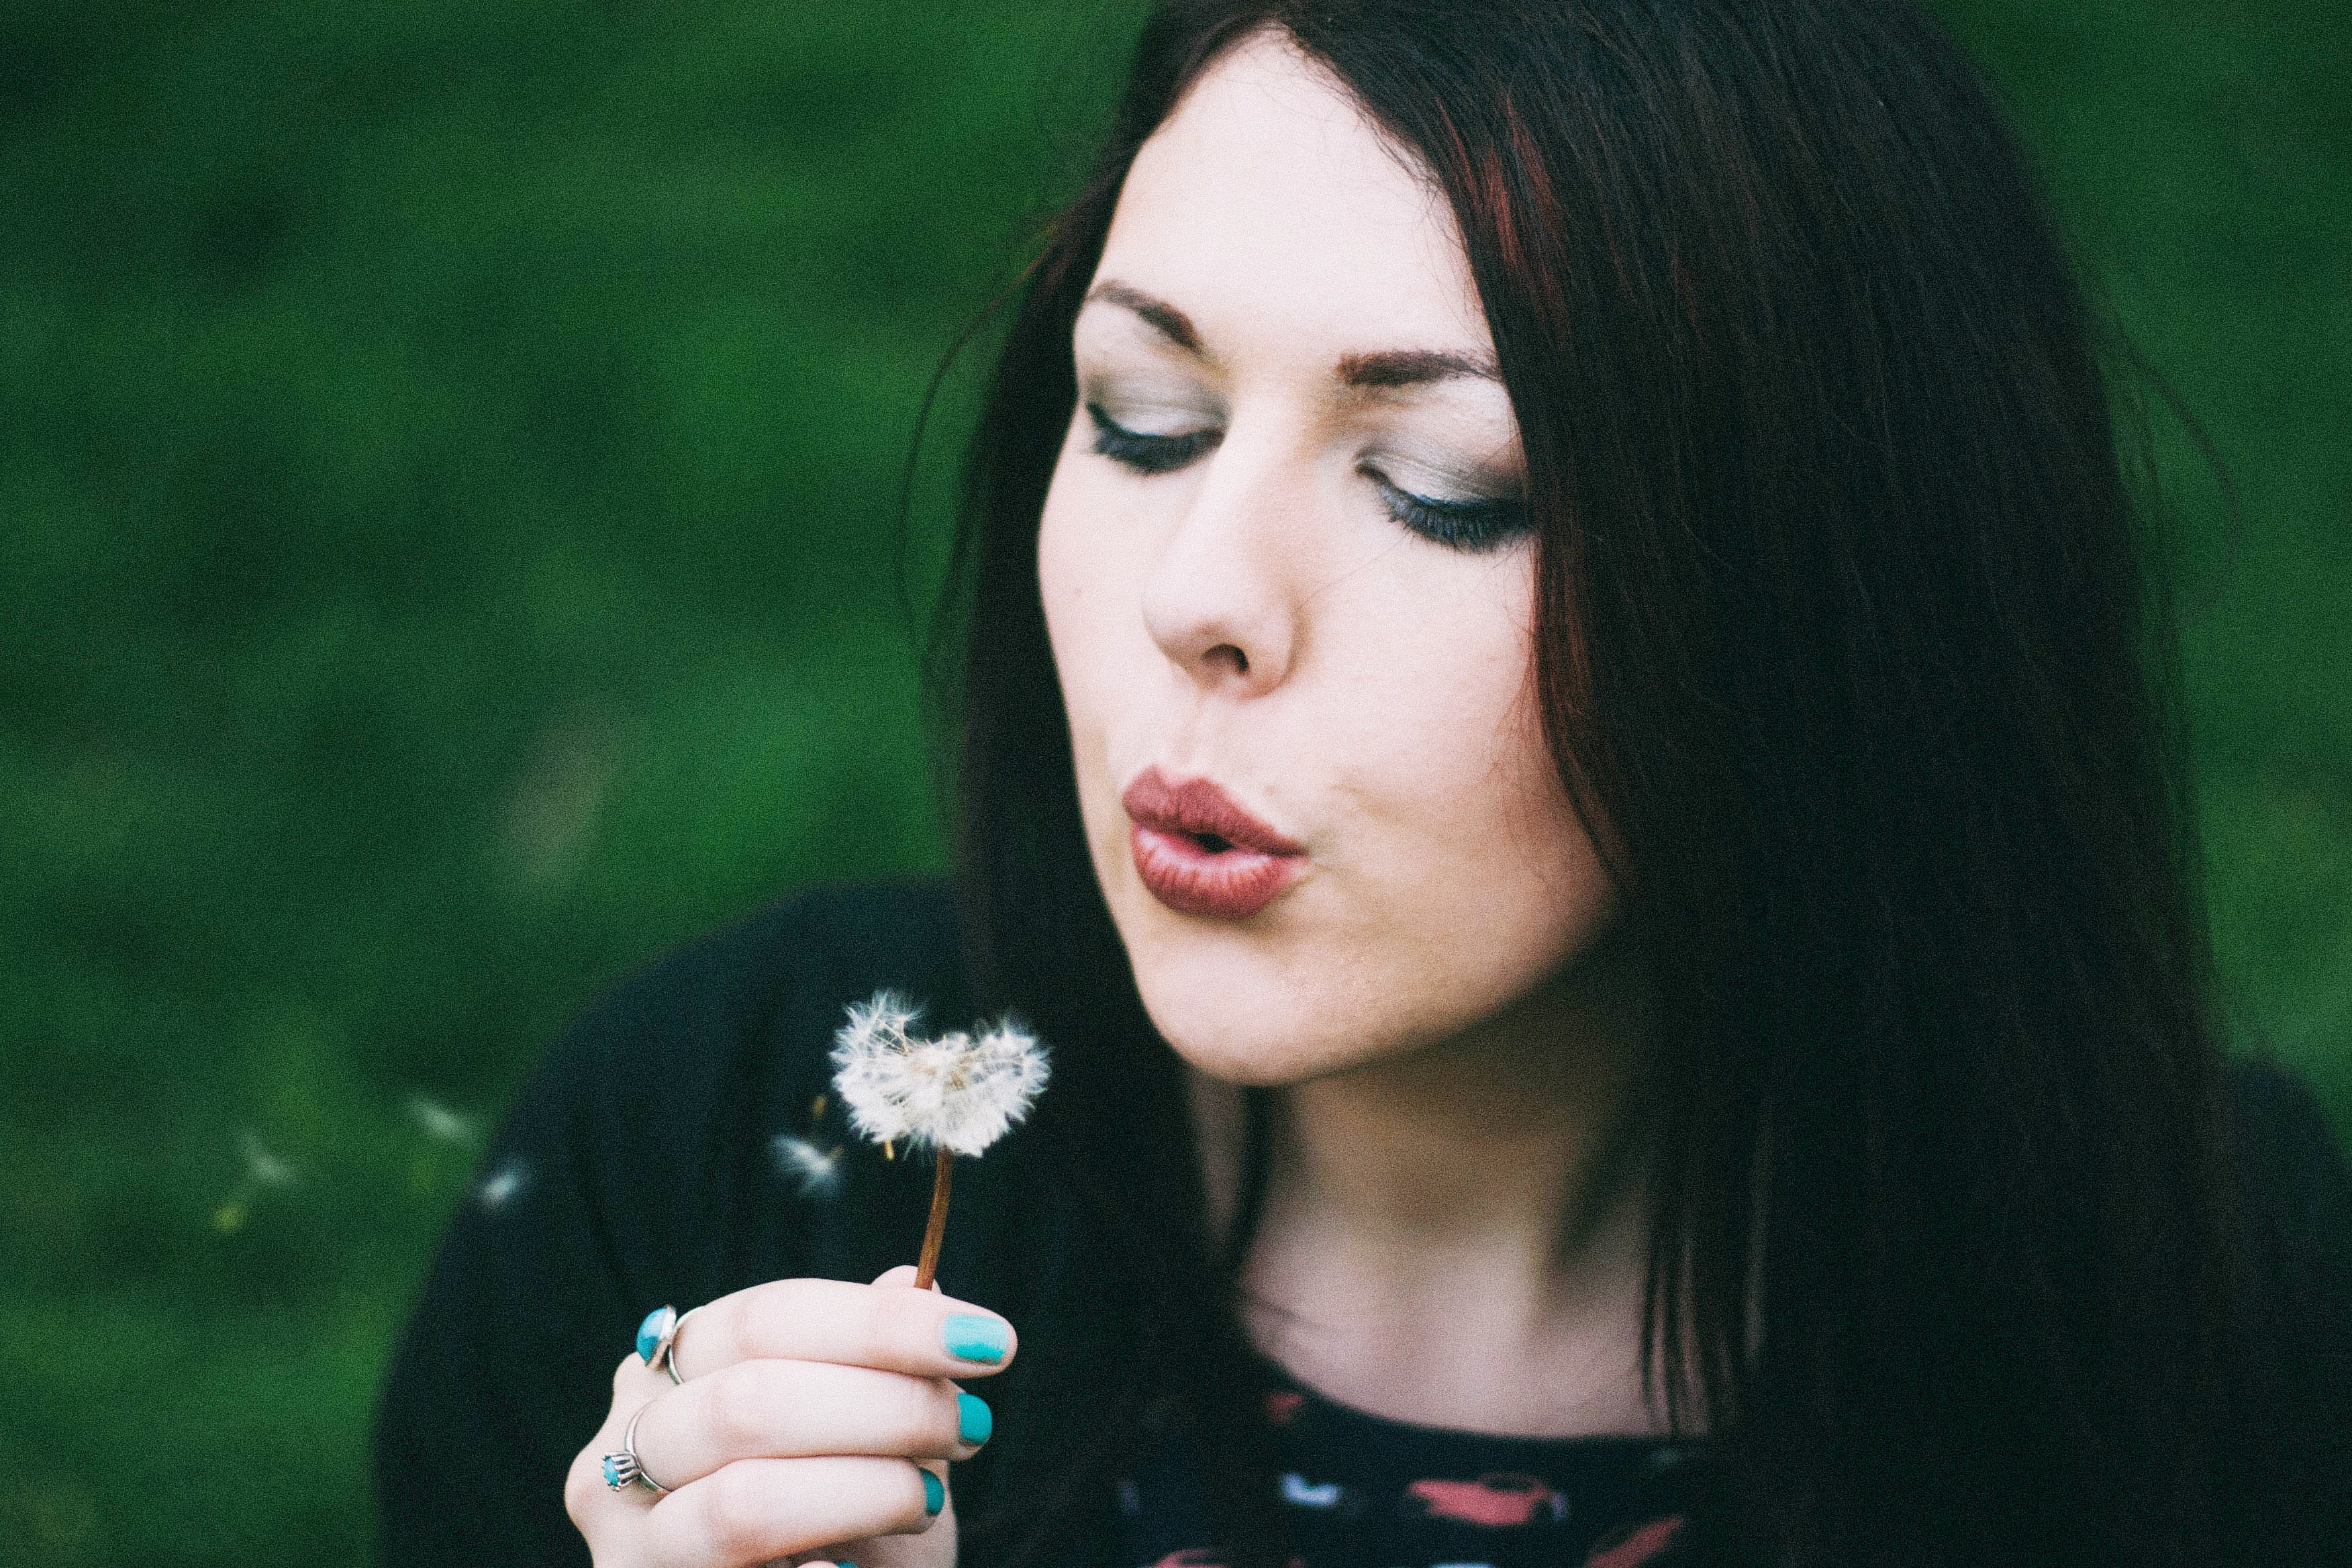 woman blowing white dandelion